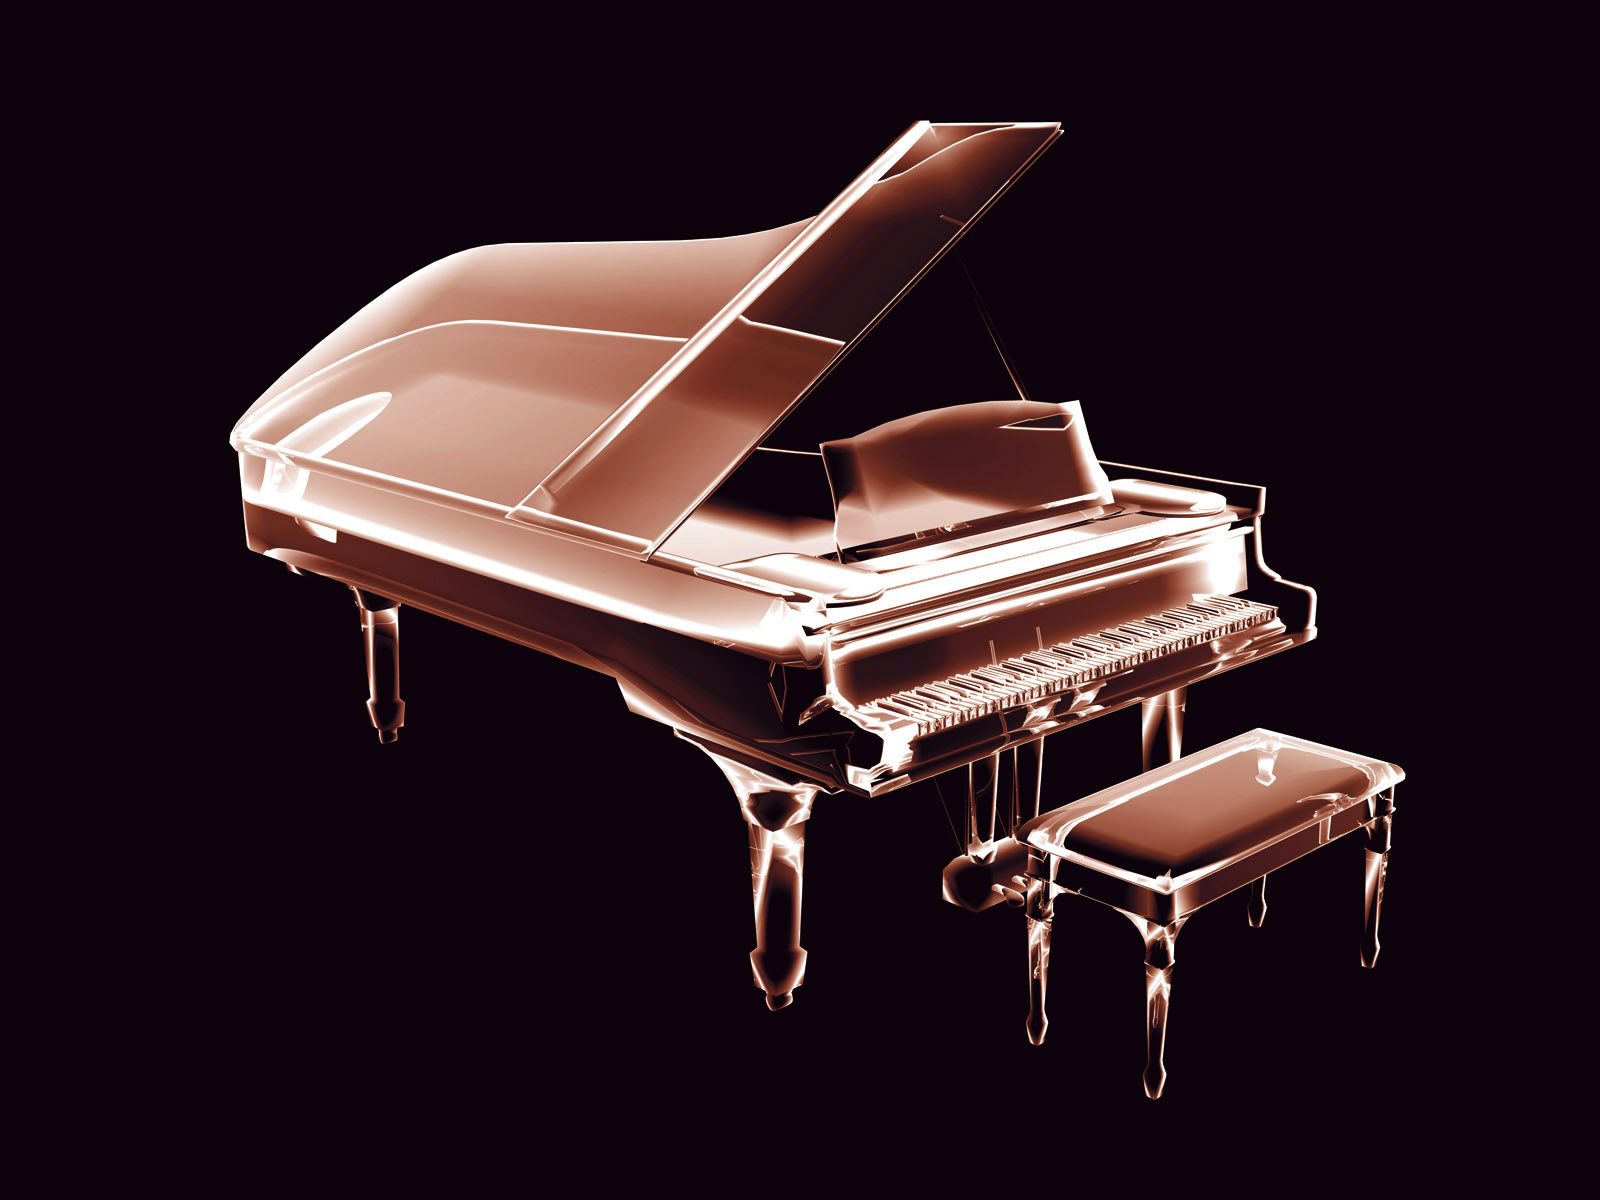 Image Neon Piano Wallpapers And Stock Photos